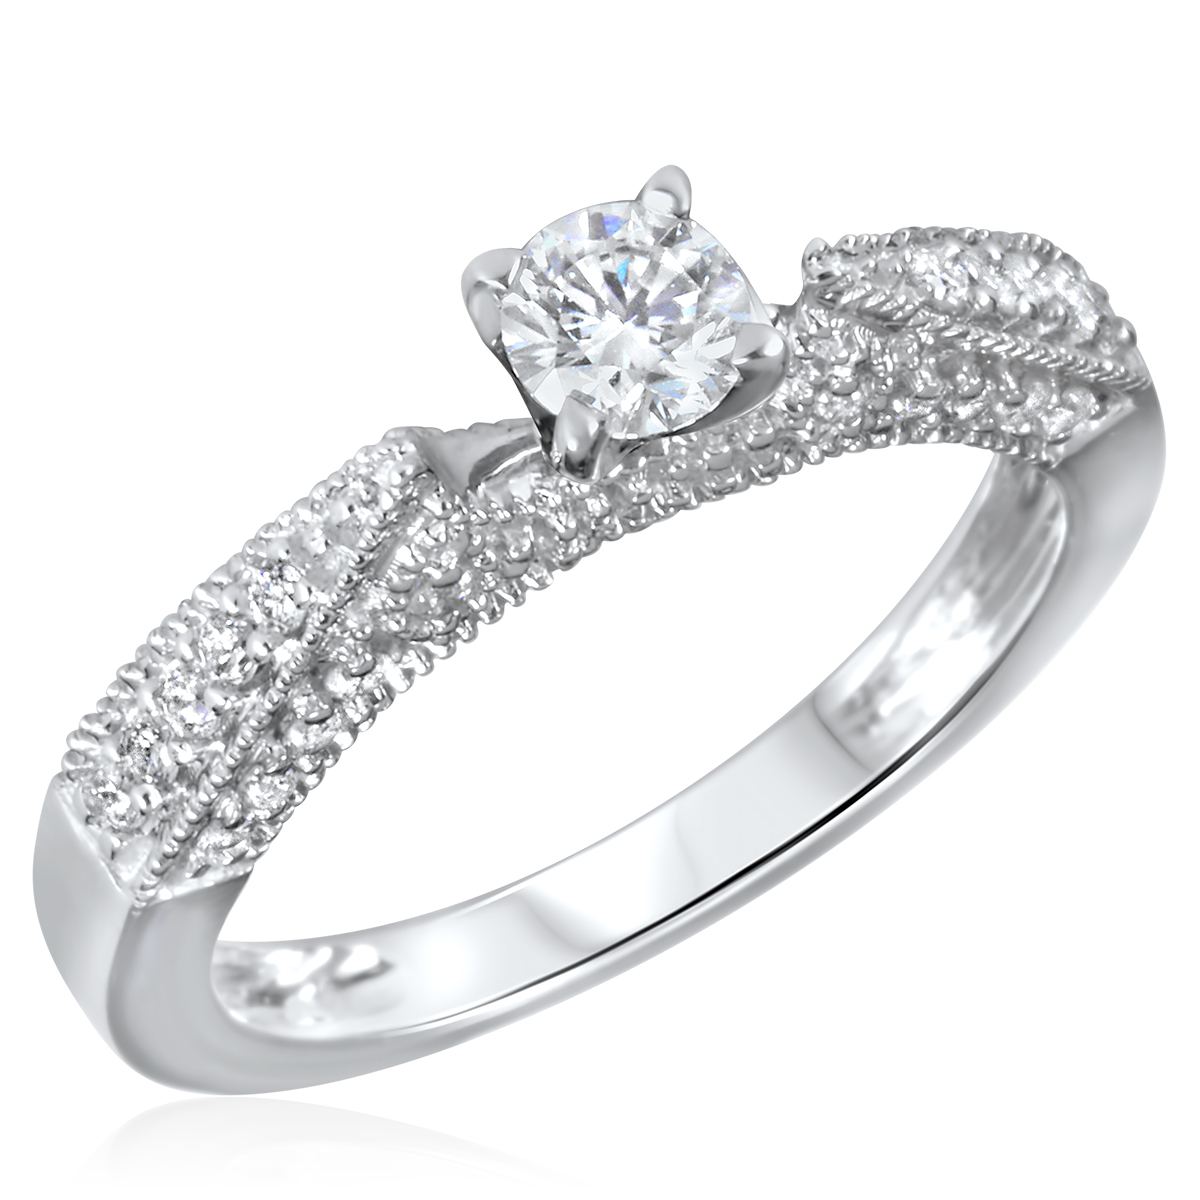 5/8 CT. T.W. Diamond Ladies Engagement Ring 10K White Gold- Size 8